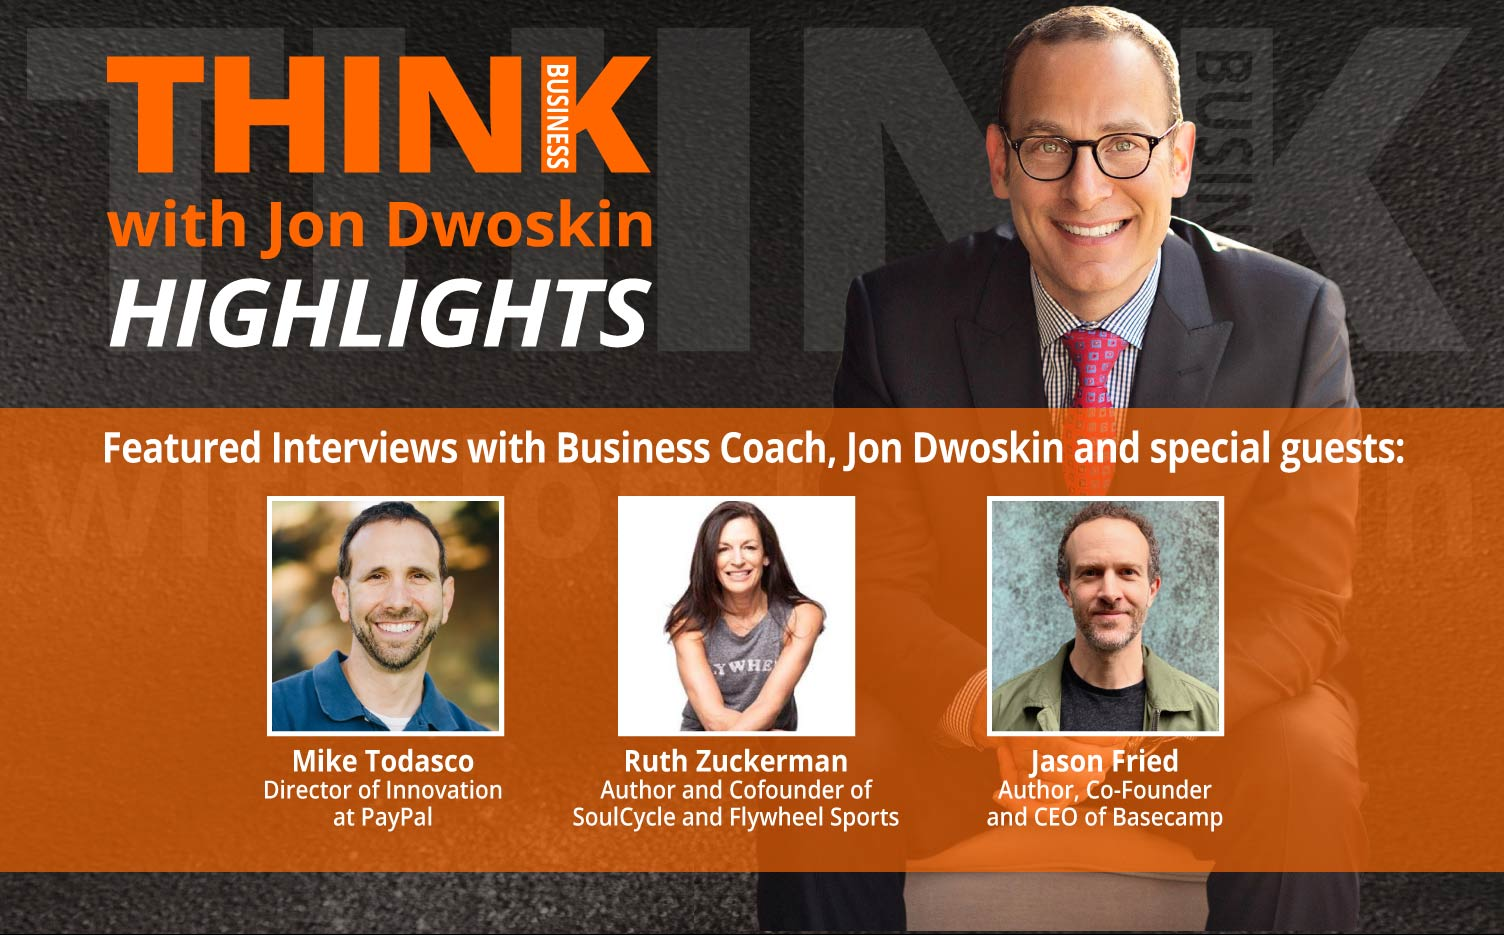 THINK Business: HIGHLIGHTS – Jon Dwoskin Featured Interviews with Mike Todasco, Ruth Zuckerman, Jason Fried